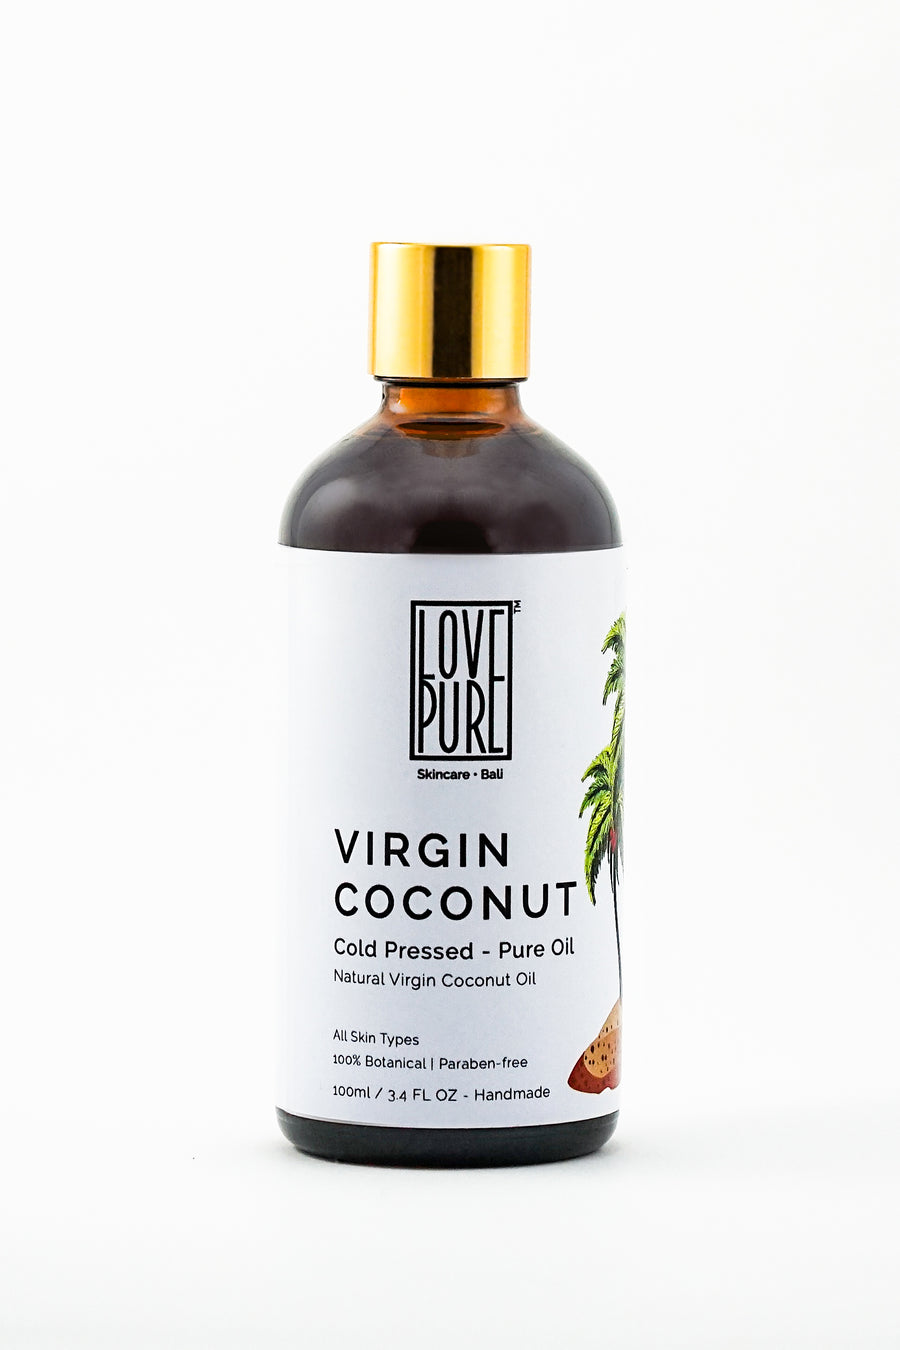 Pure cold pressed Virgin Coconut Oil 100ml